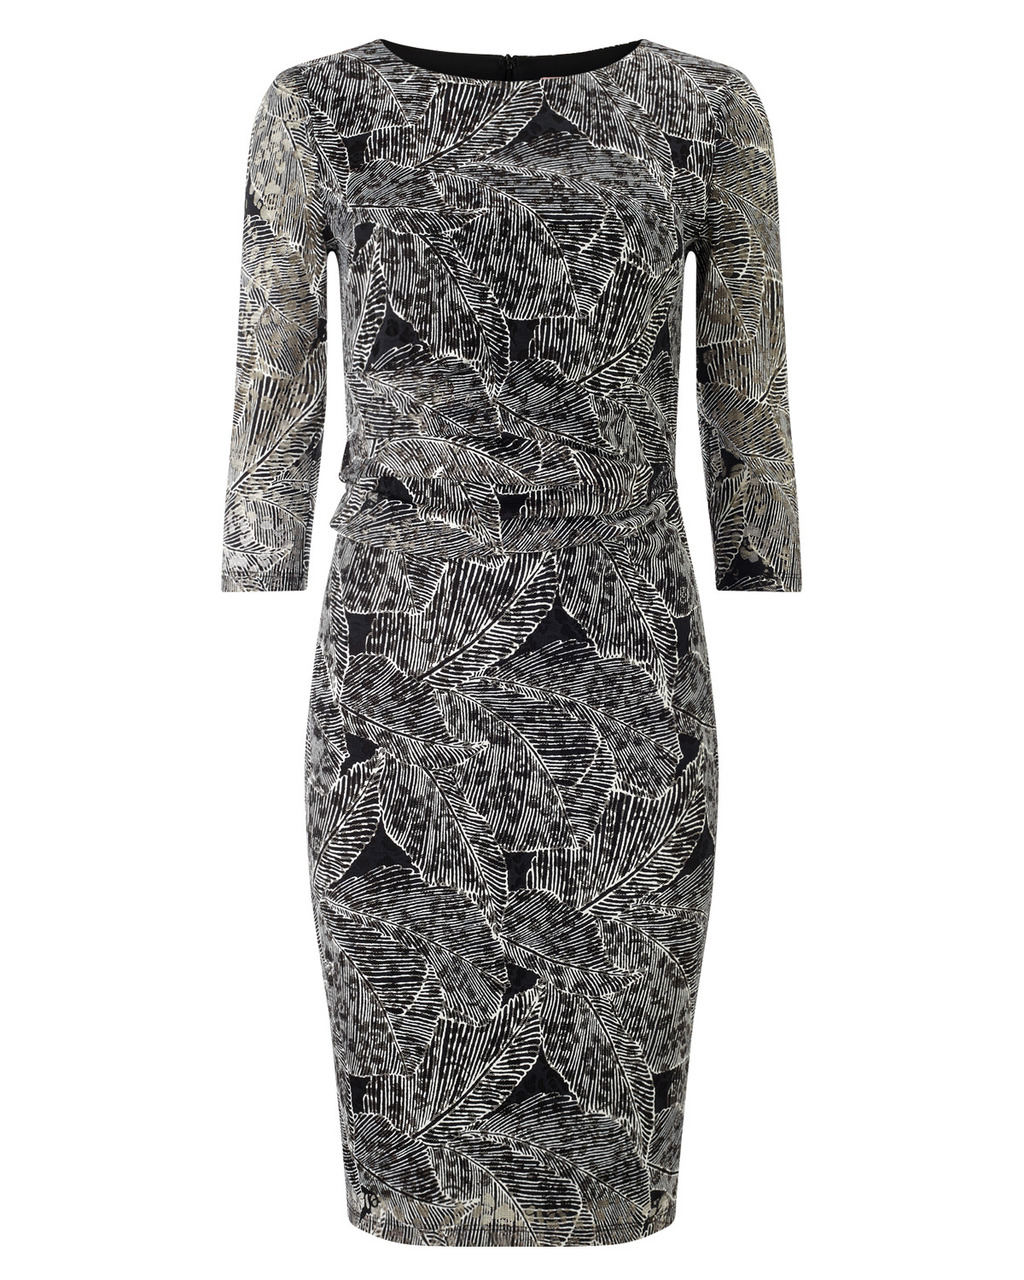 Leaf Print Lace Dress - style: shift; secondary colour: mid grey; predominant colour: black; occasions: evening, occasion; length: just above the knee; fit: body skimming; fibres: cotton - mix; neckline: crew; sleeve length: 3/4 length; sleeve style: standard; pattern type: fabric; pattern size: standard; pattern: patterned/print; texture group: jersey - stretchy/drapey; season: s/s 2016; wardrobe: event